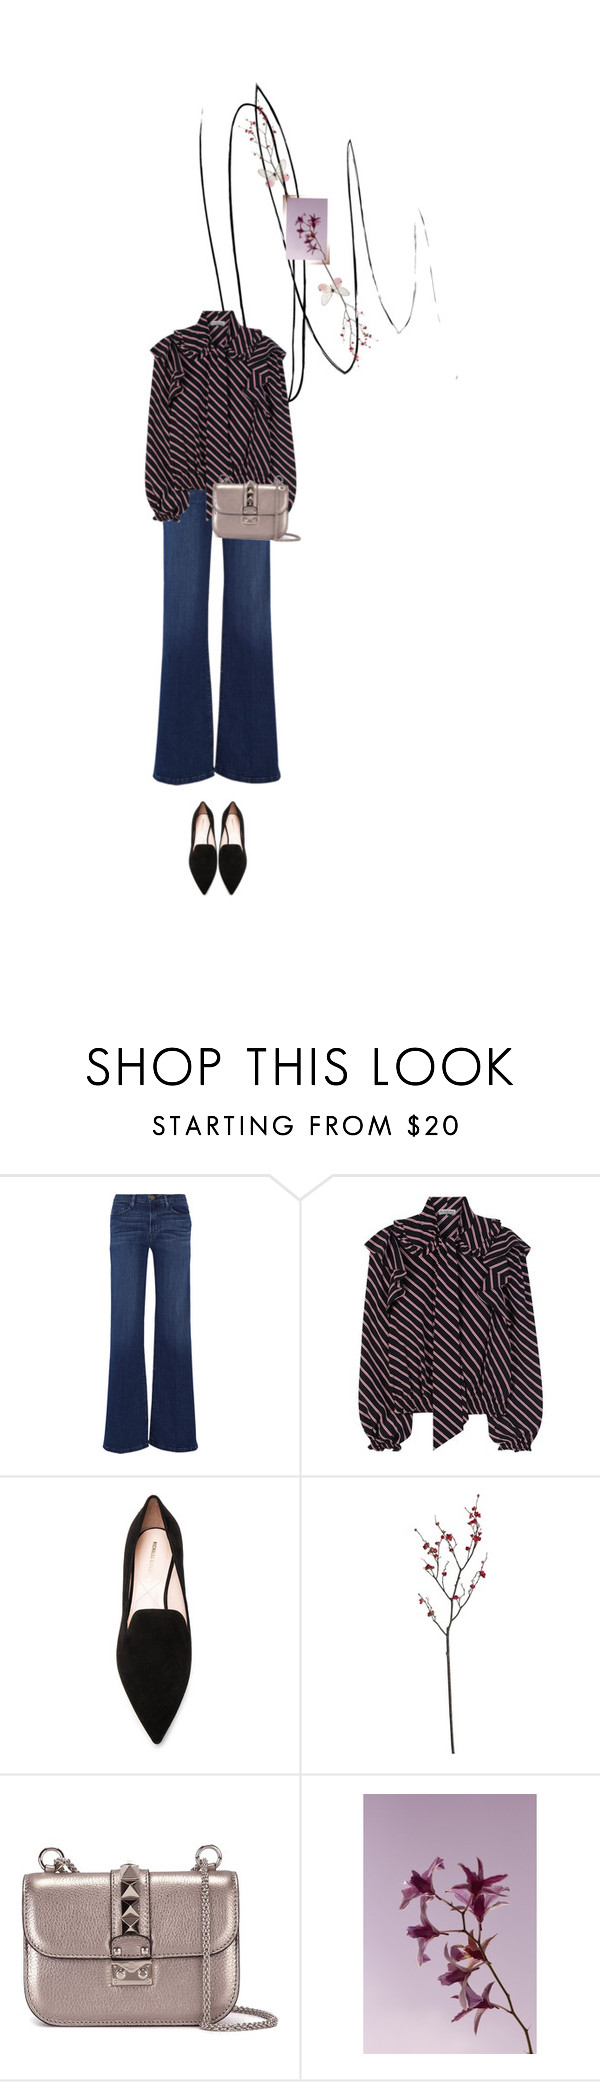 """Untitled #1547"" by maja-z-94 ❤ liked on Polyvore featuring Frame Denim, Balenciaga, Nicholas Kirkwood, Crate and Barrel and Valentino"